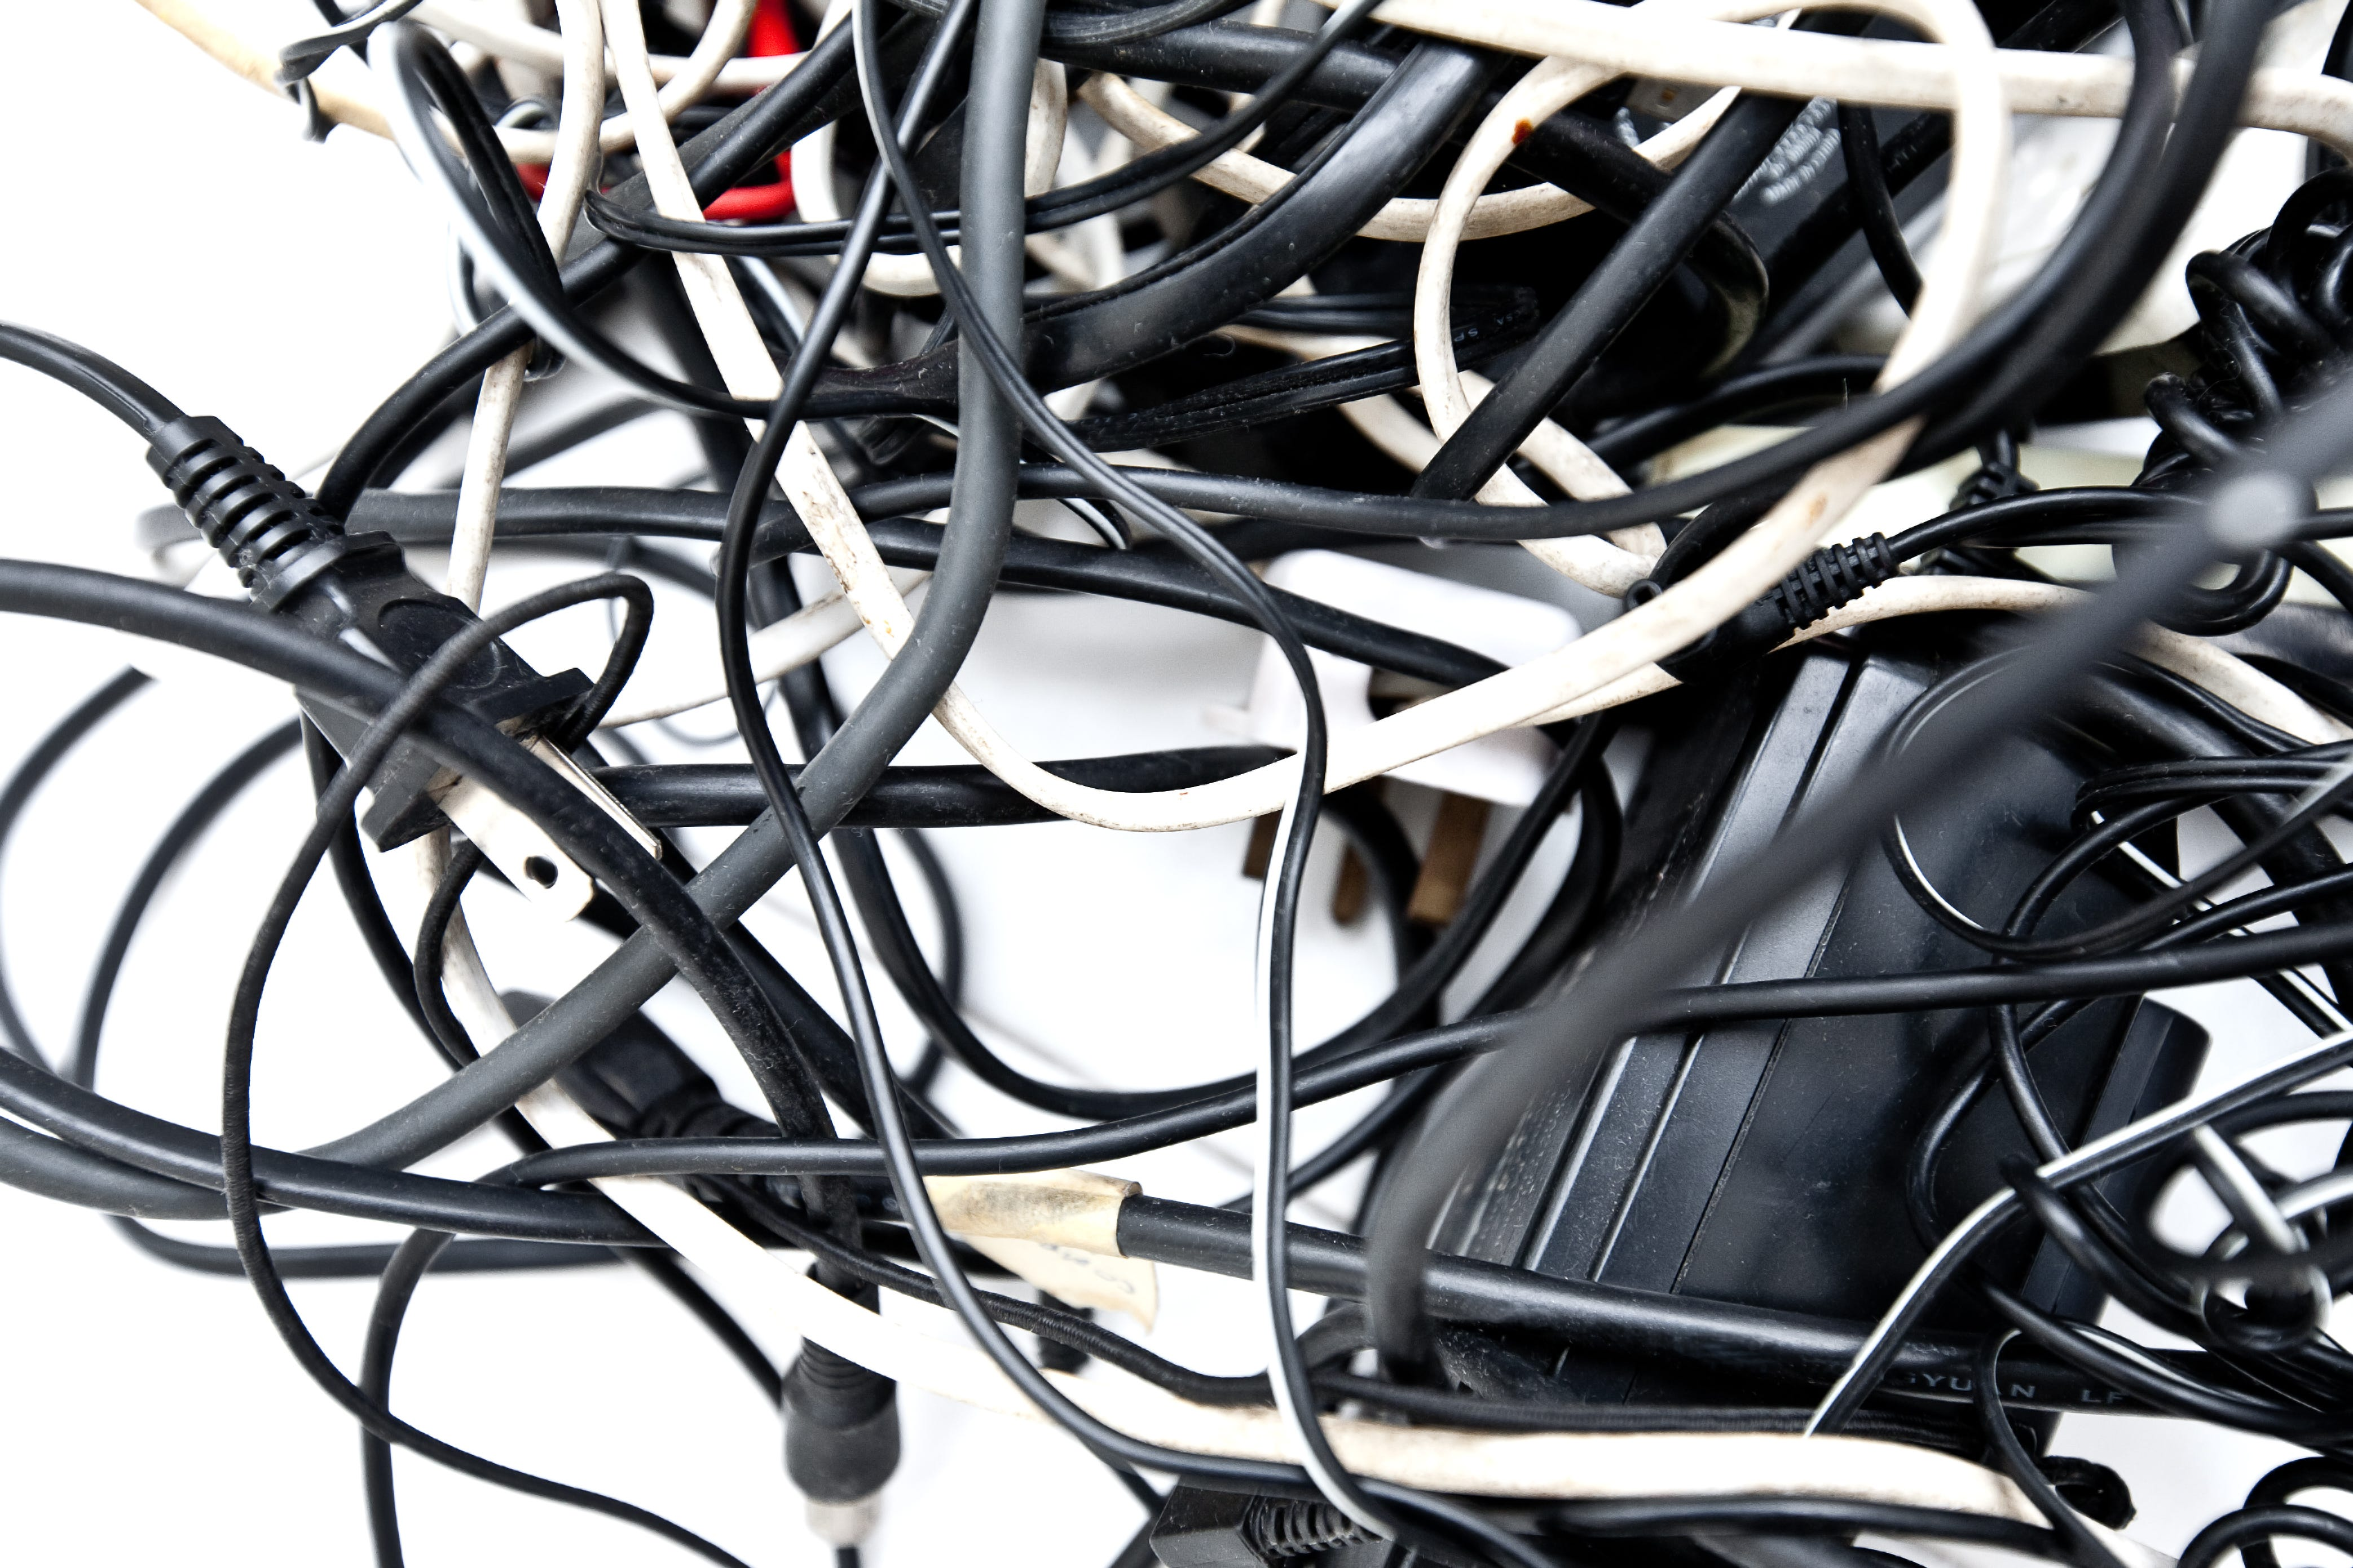 Cable Management Tips for Your Home Theatre System